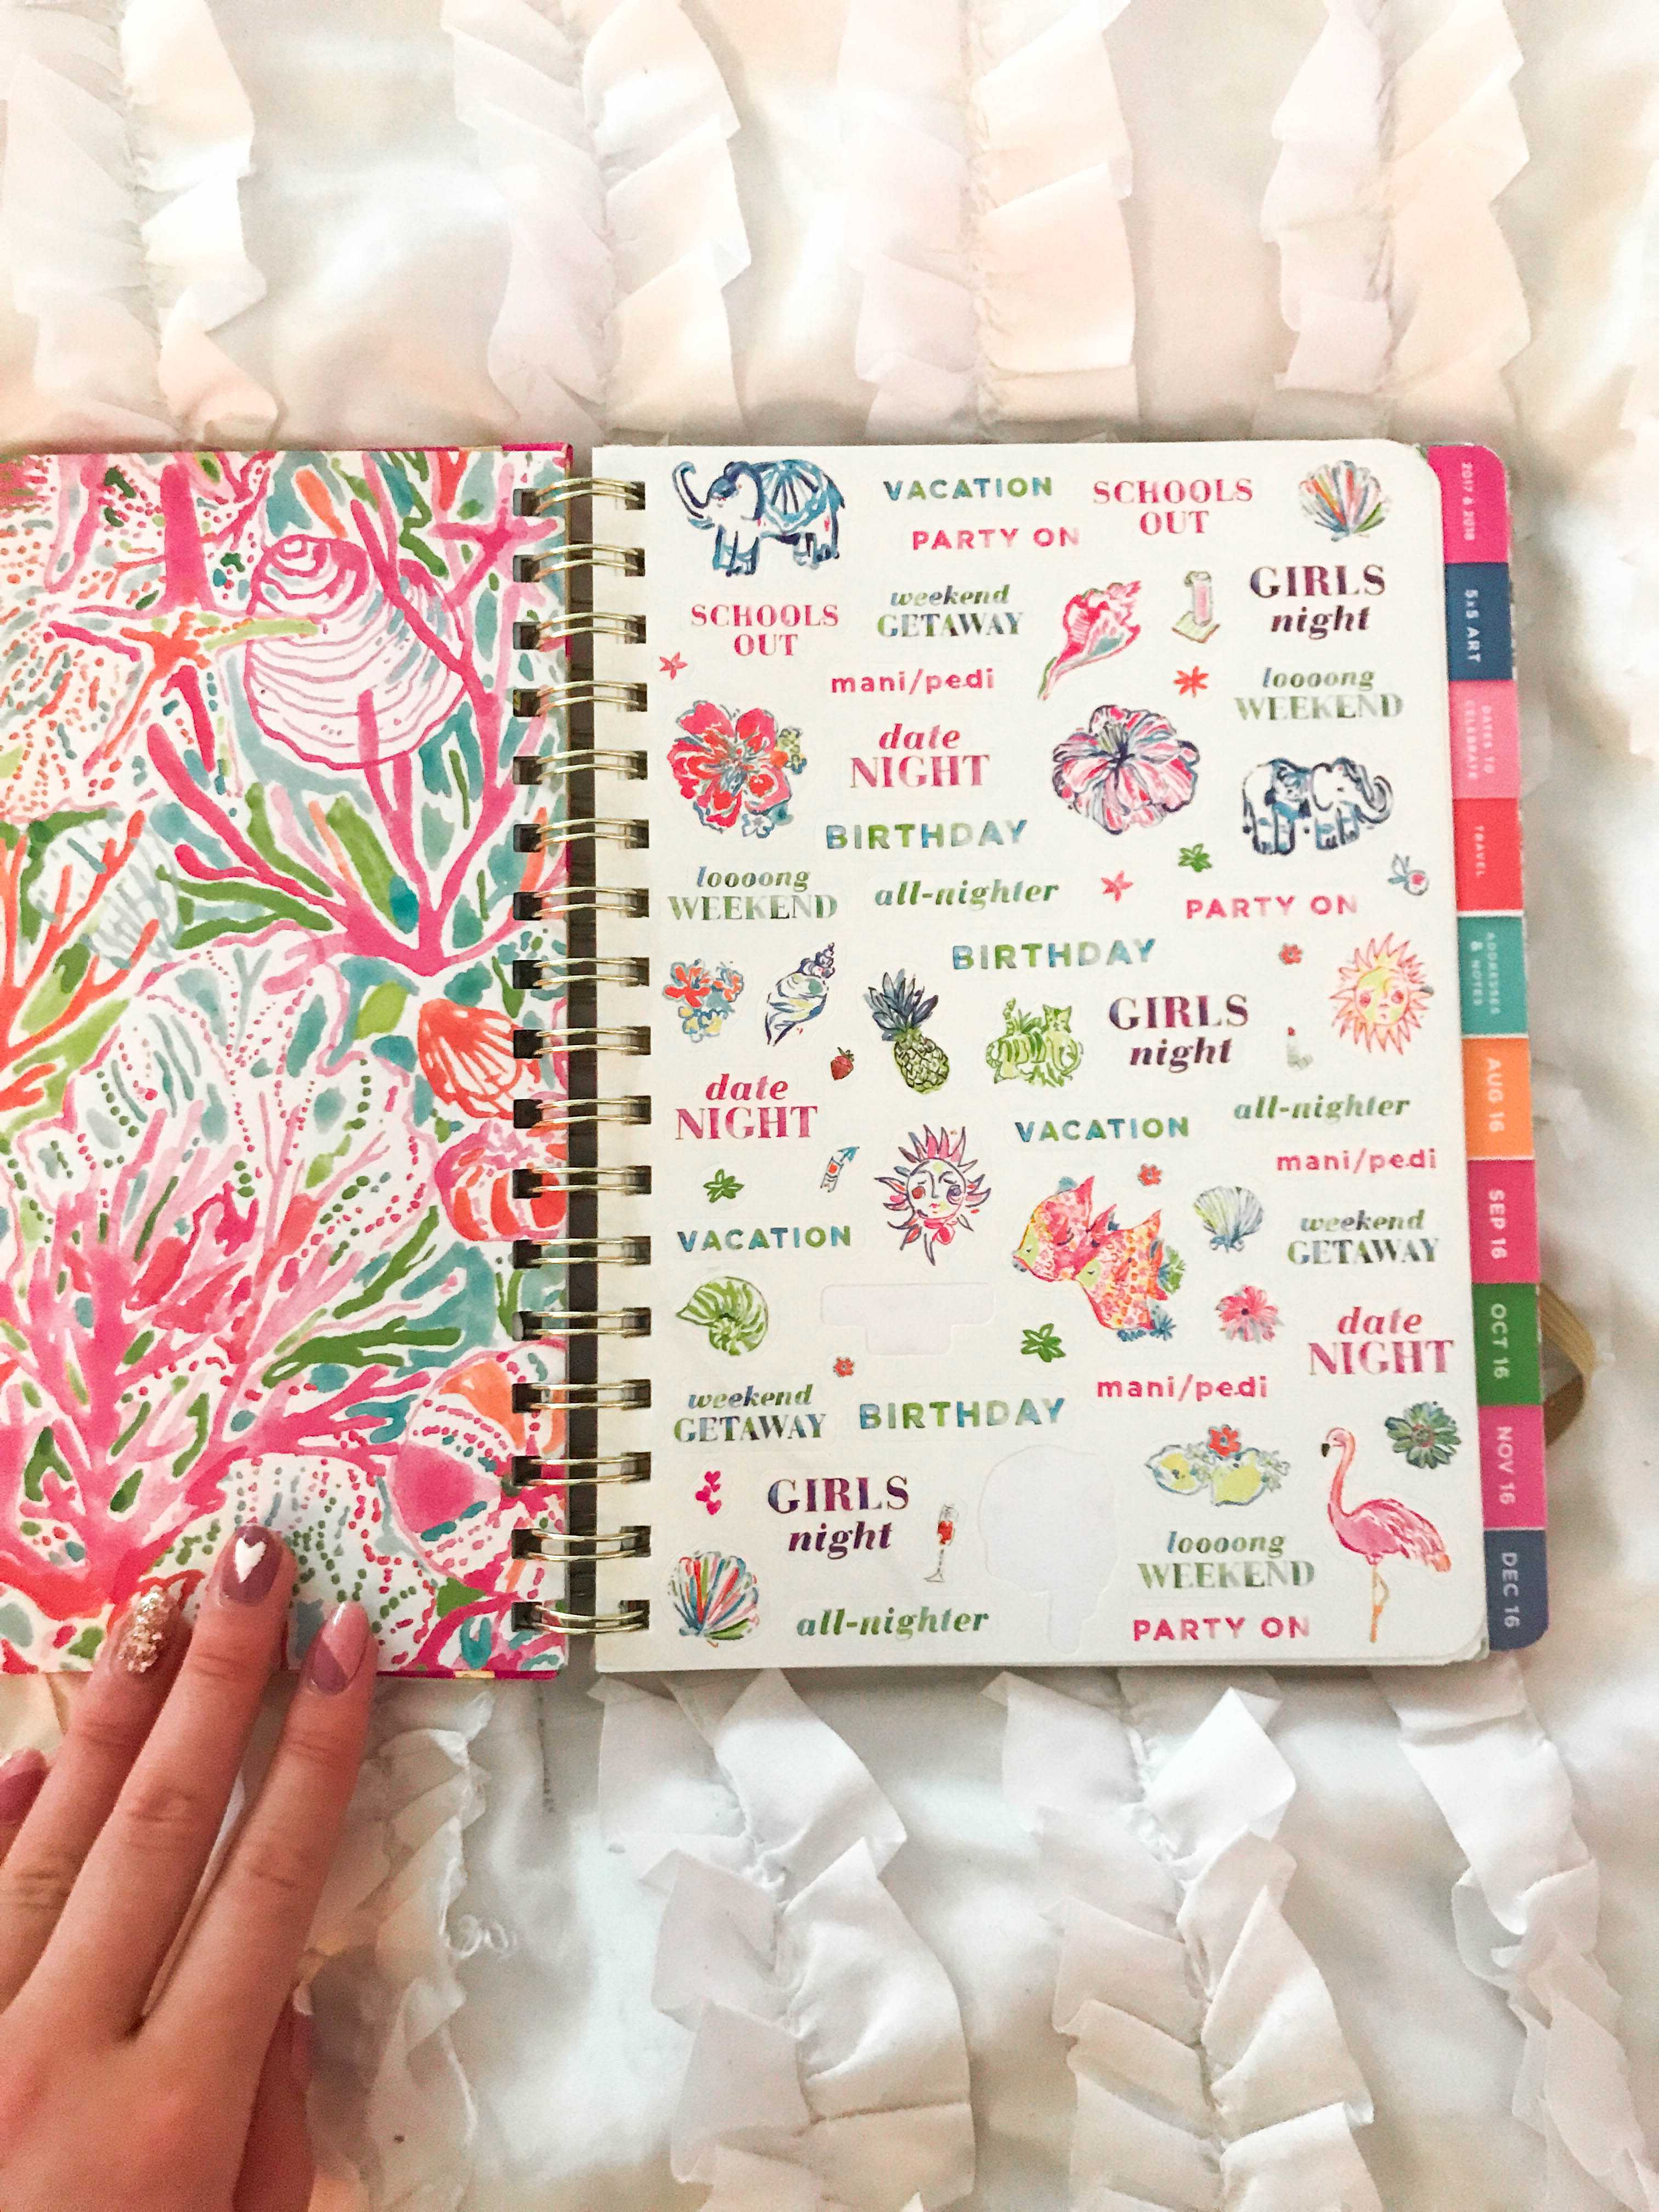 lilly pulitzer preppy agenda planner stickers organization stationary flatlay on white ruffle duvet comforter watercolor art floral flowers hand lettering